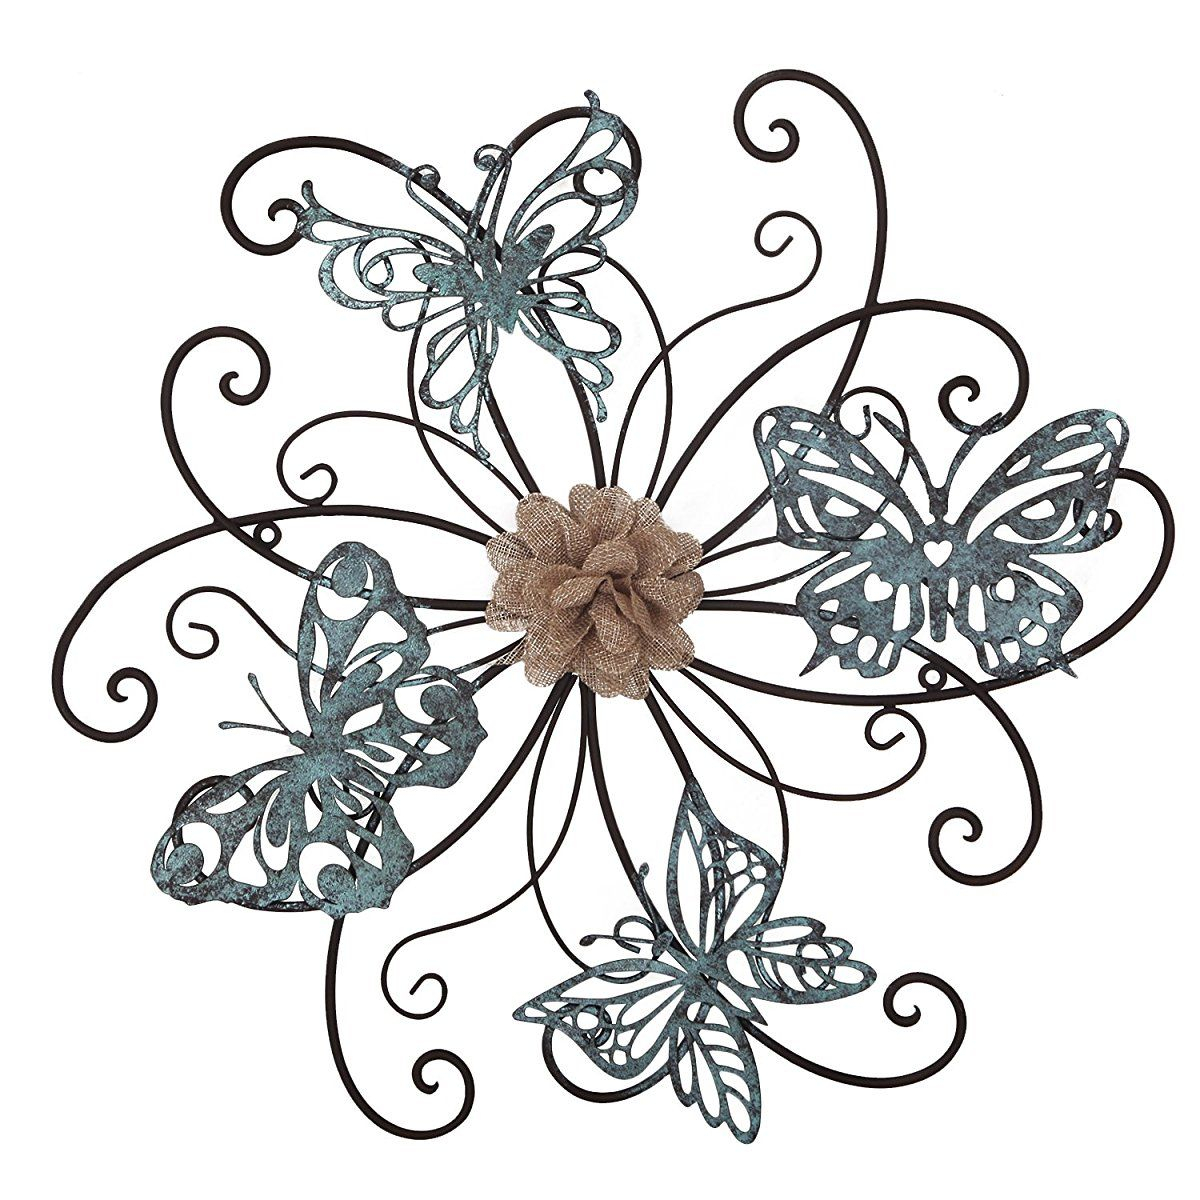 Homes Art Flower And Butterfly Urban Design Metal Wall Decor Intended For Flower Urban Design Metal Wall Decor (View 4 of 30)